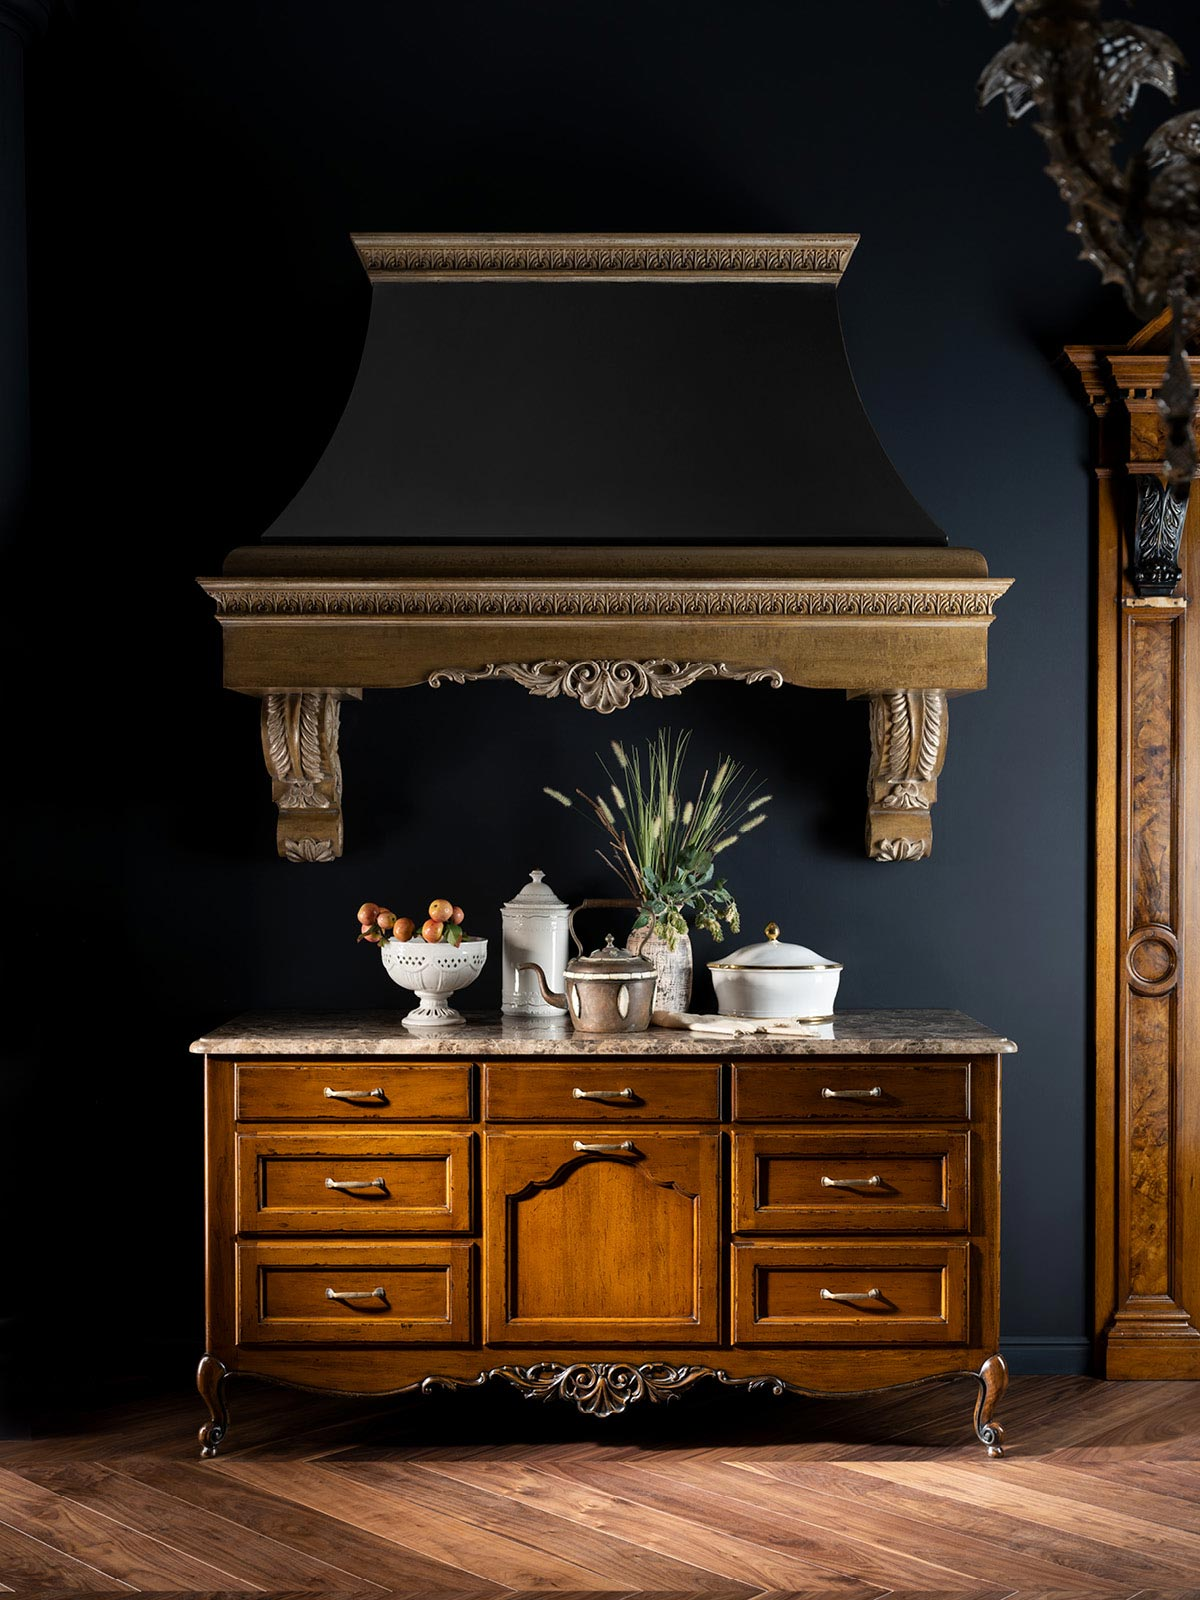 Cooking unit with decorative hood.